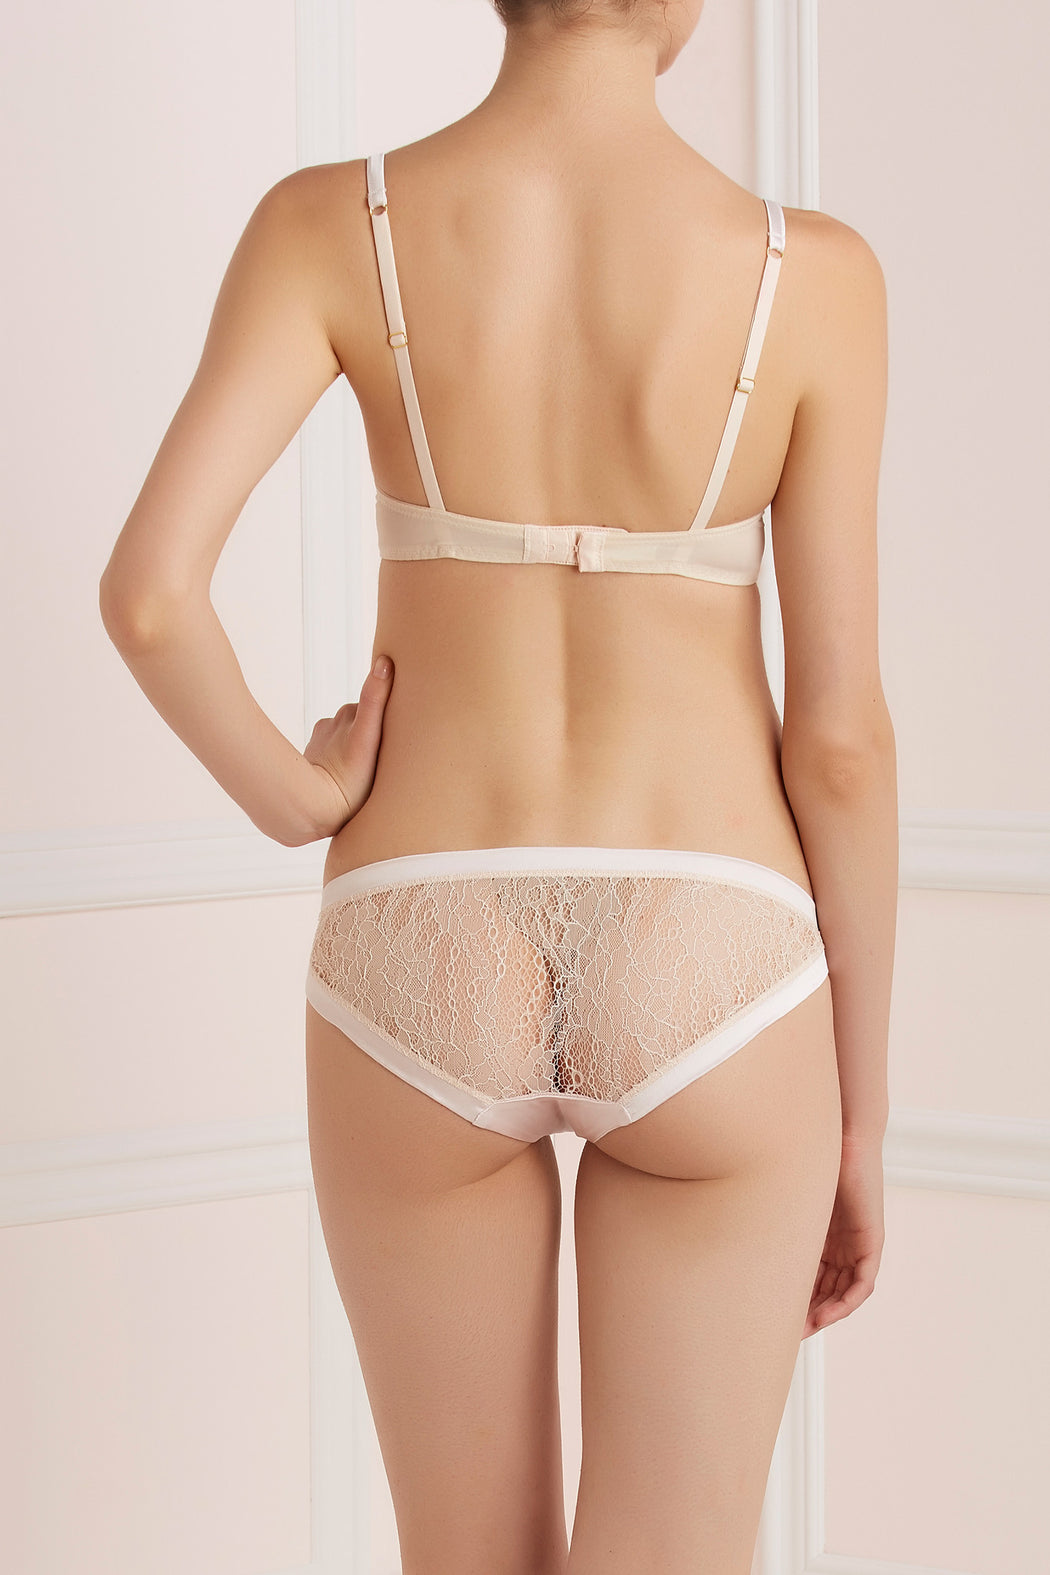 Silk and Lace Sugar Pie soft knicker by Mimi Holliday workingirls lingerie